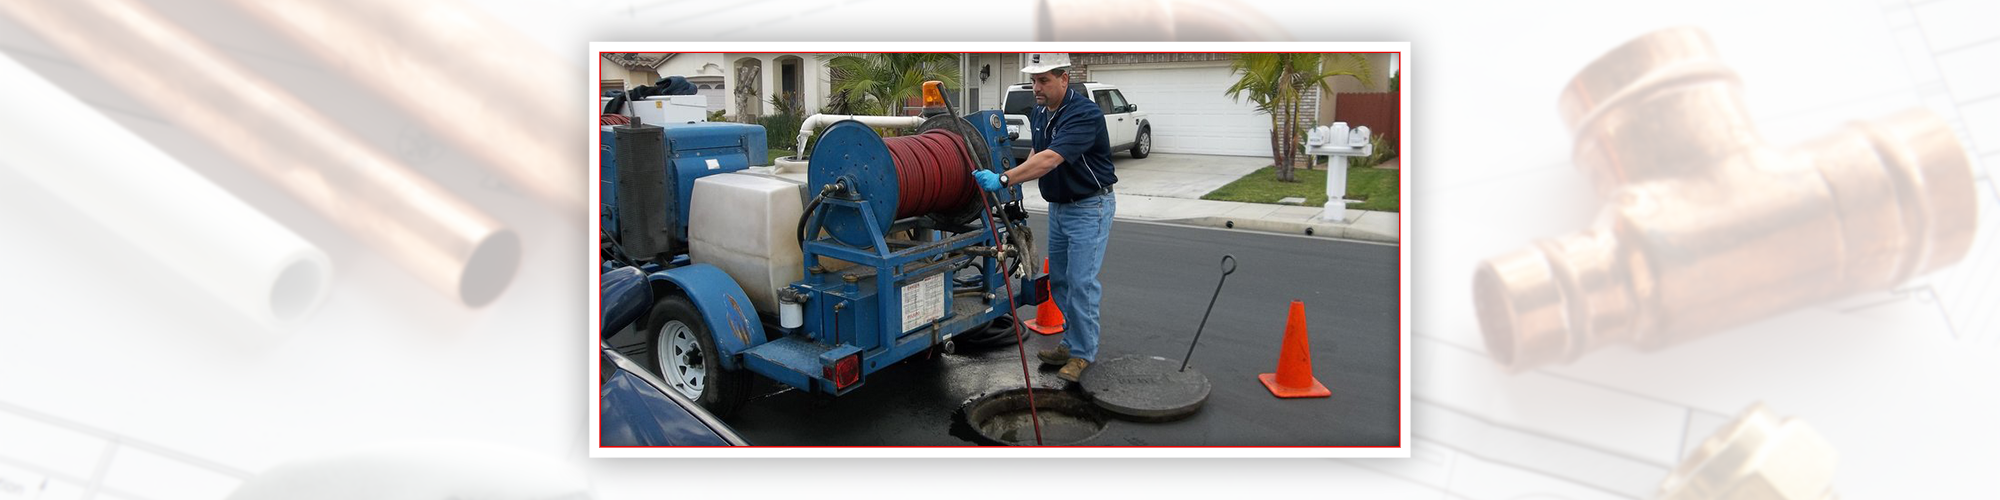 Conducting Septic Services